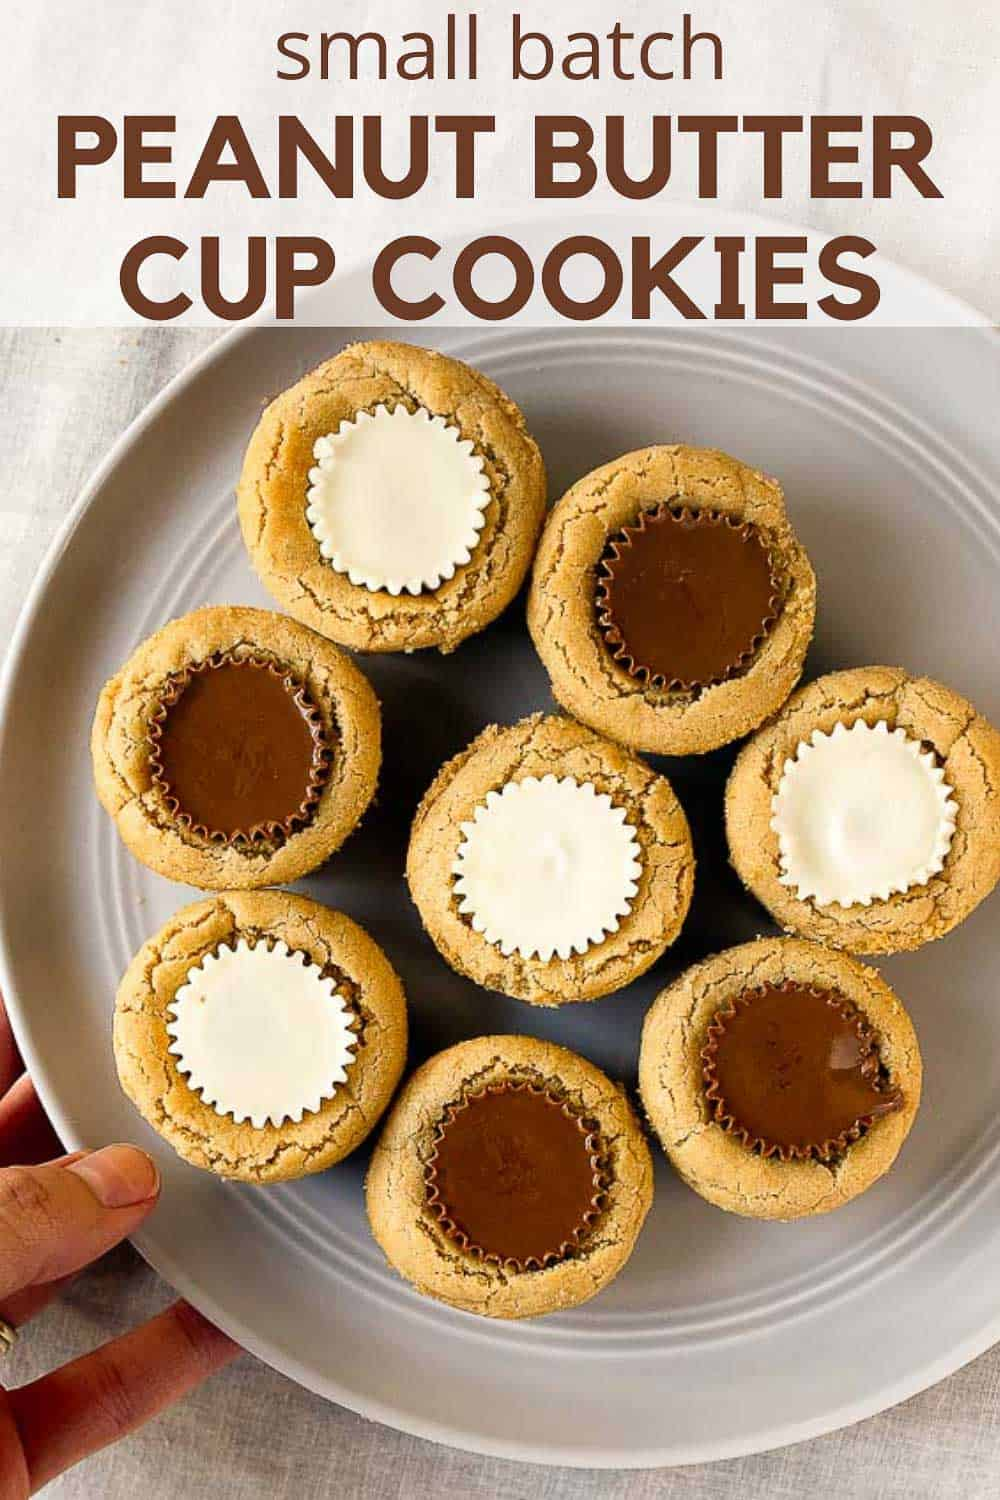 Peanut butter cup cookies made with Reese's in mini muffin pan. Small batch peanut butter cookie cups, makes 8 cookies.